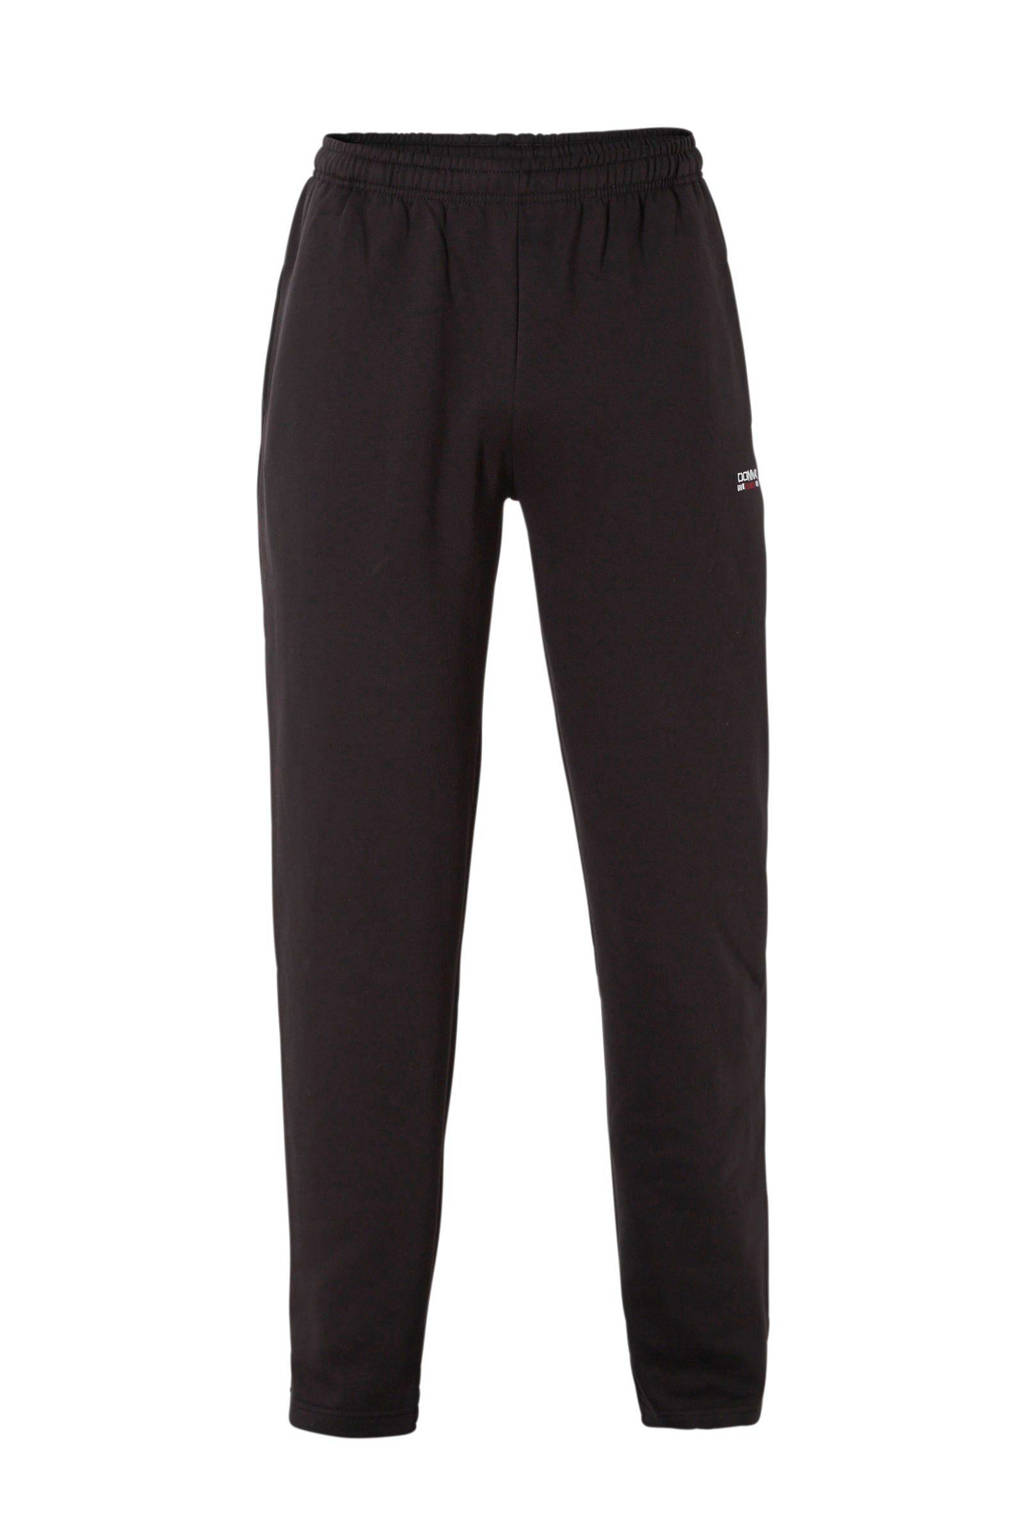 Warme Joggingbroek Dames.Donnay Joggingbroek Zwart Wehkamp